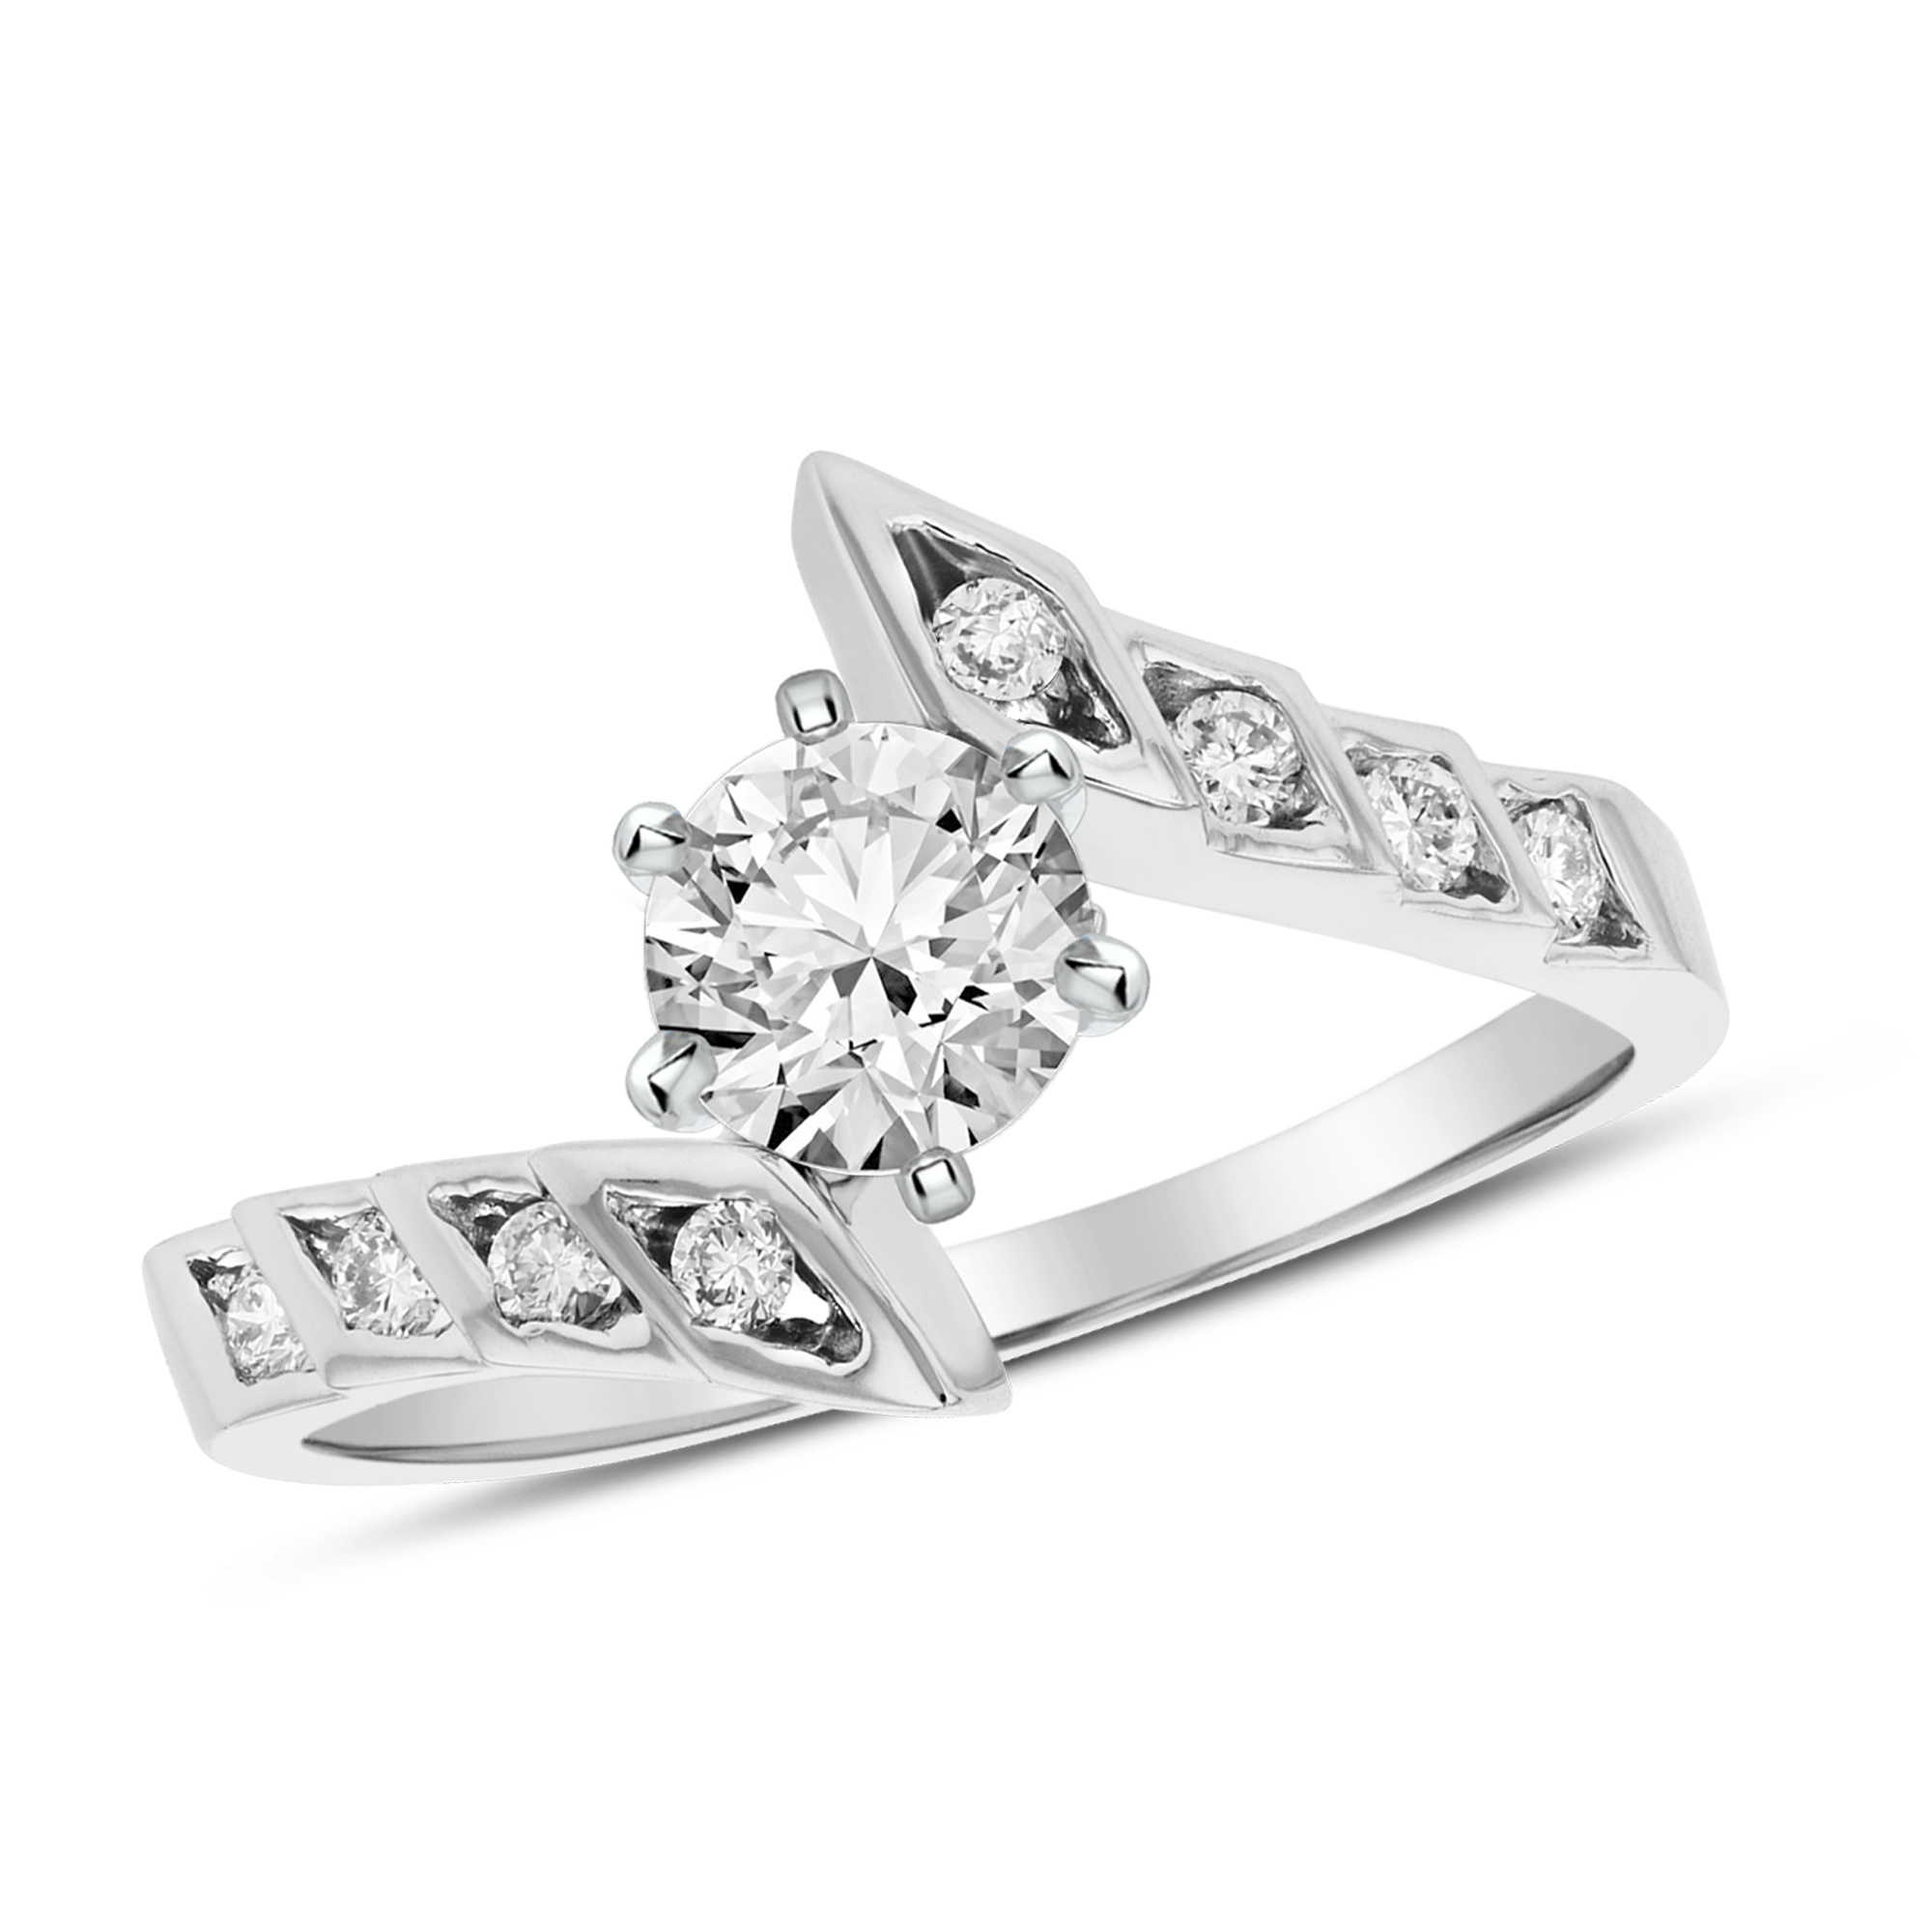 View 0.55ctw Diamond Engagement Ring in 14k Gold